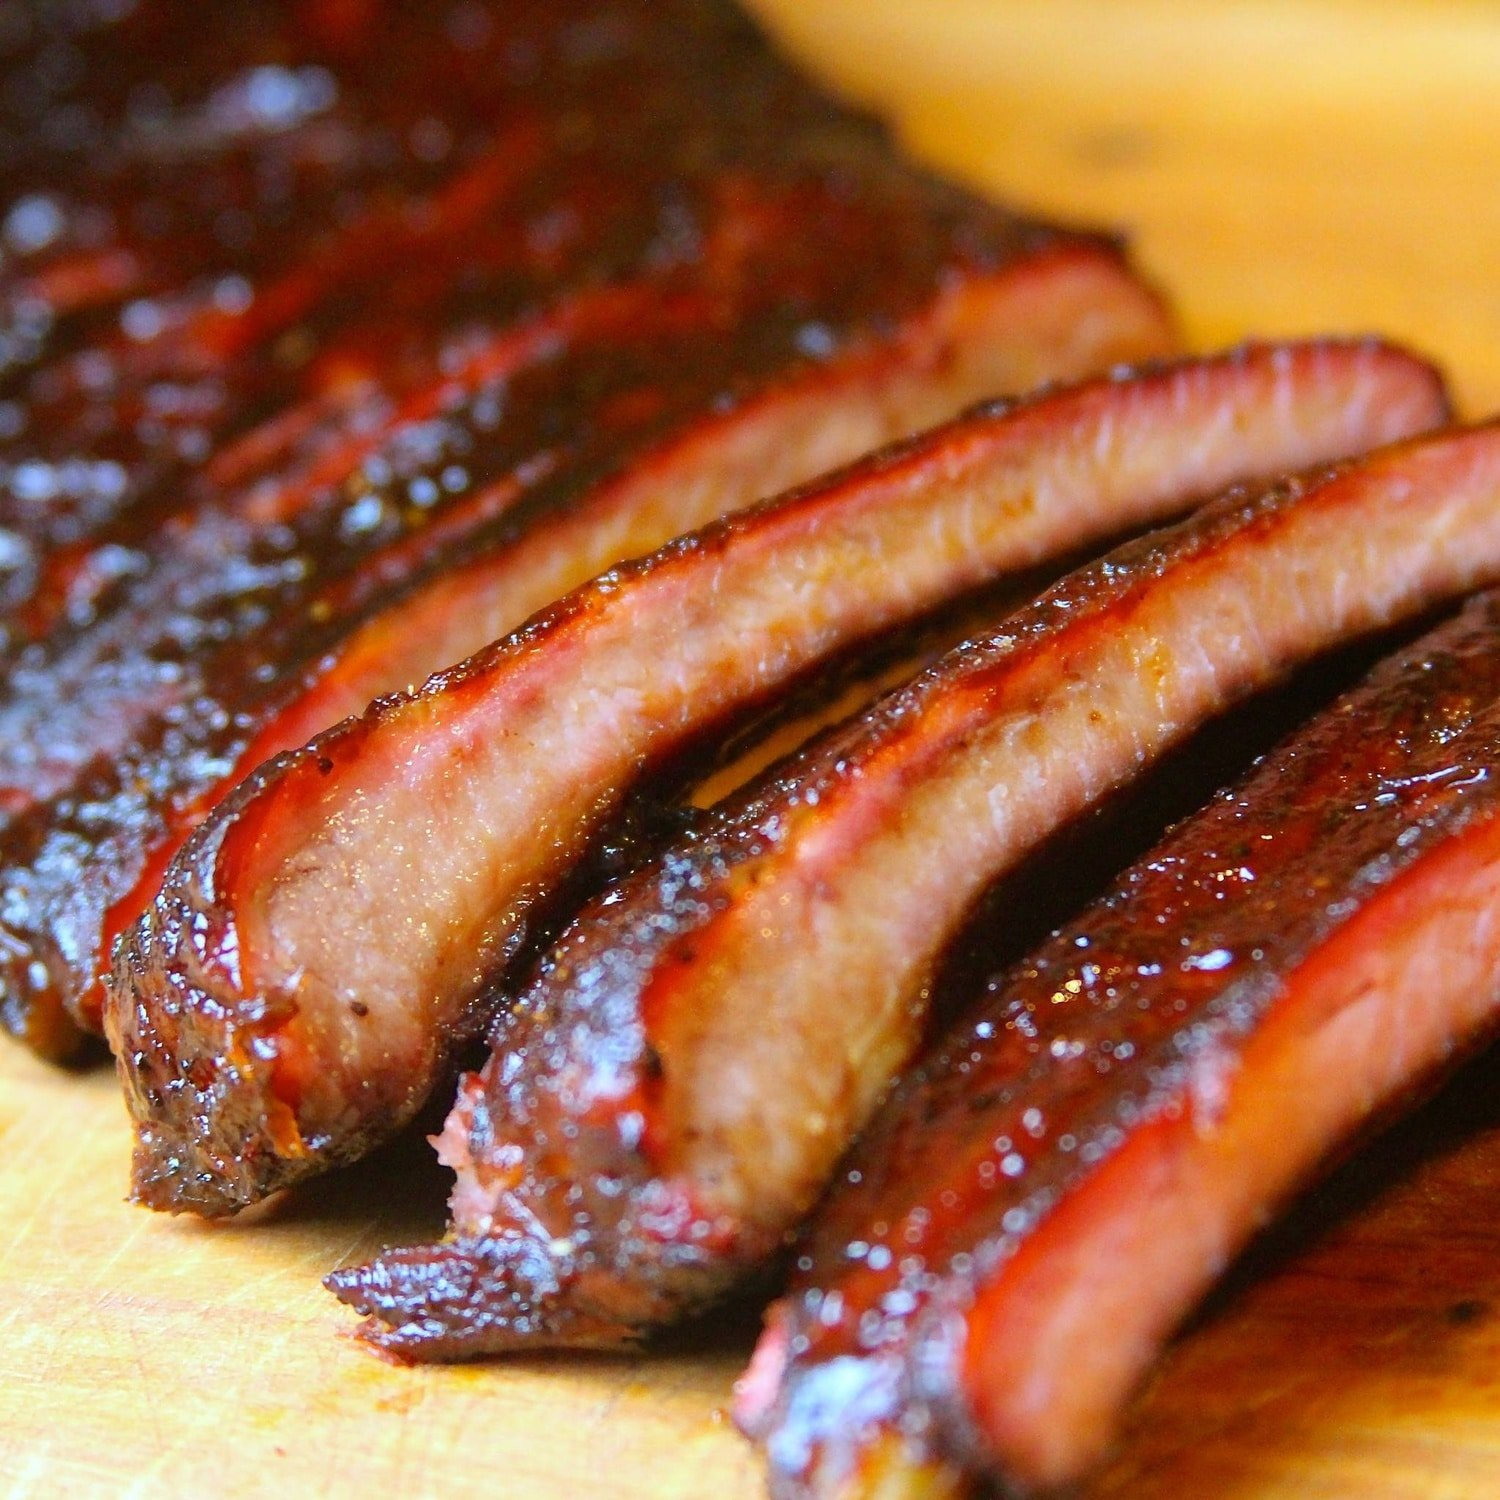 Sliced competition pork ribs